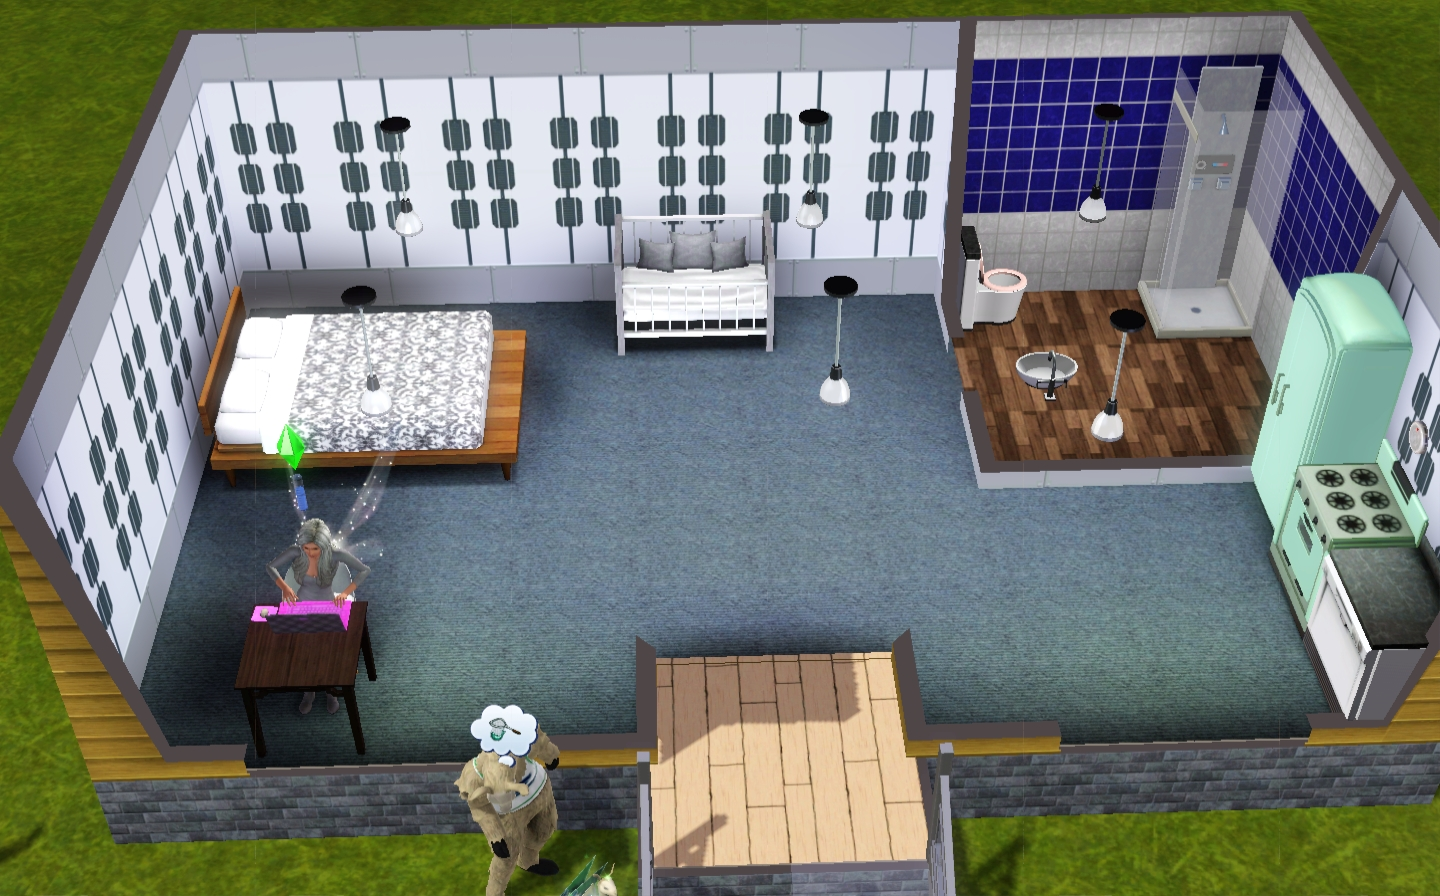 sims 3 online dating how does it work